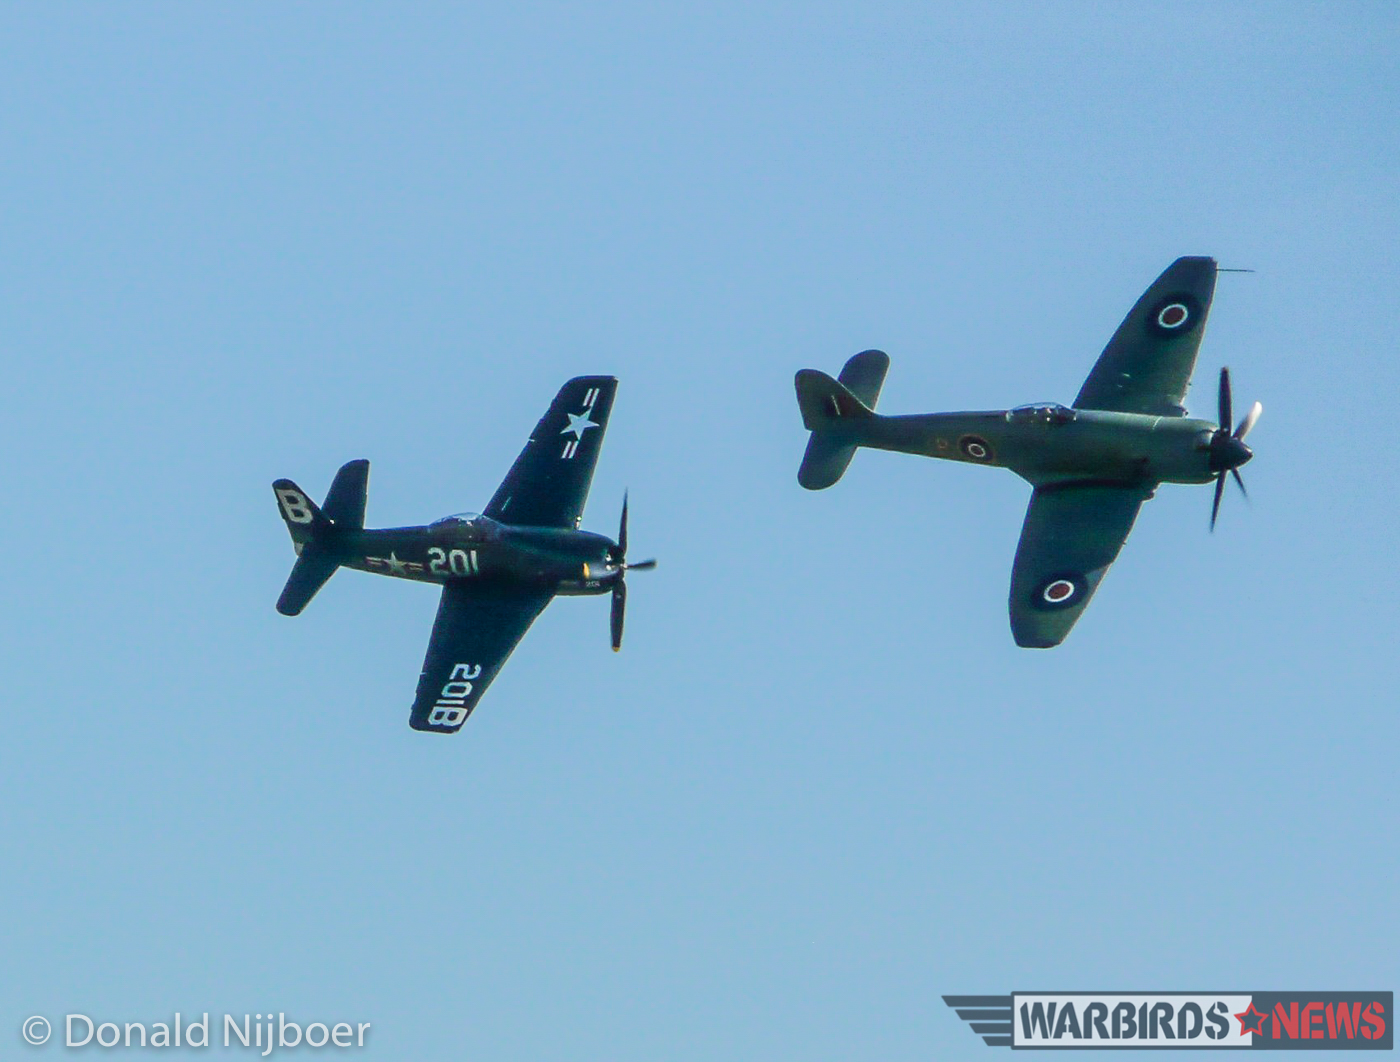 The Bearcat and Fury opened the show. (photo by Donald Nijboer)